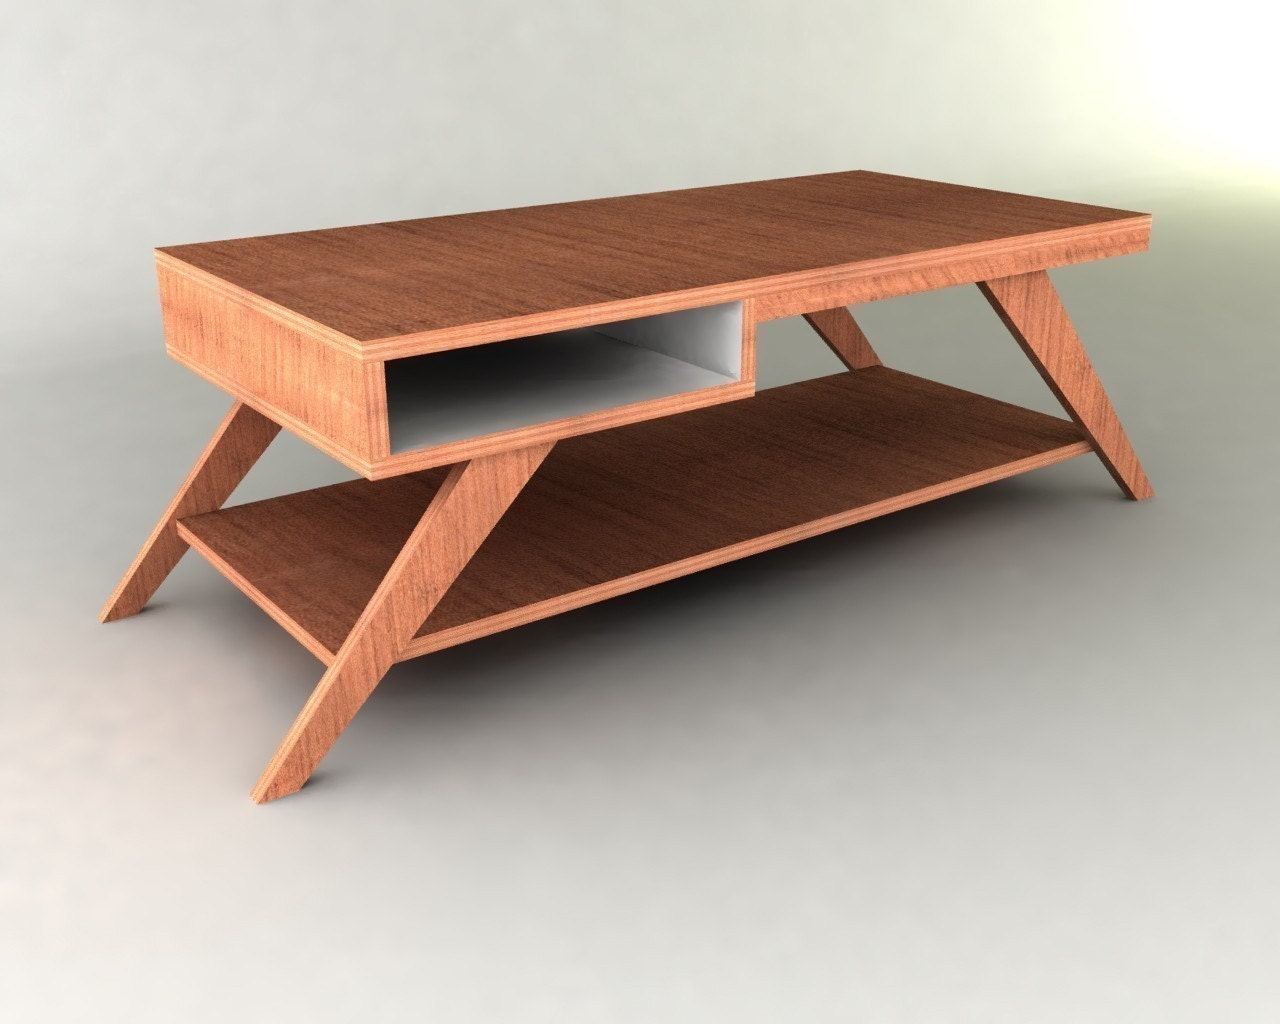 Retro Modern Eames Style Coffee Table Furniture Plan Etsy